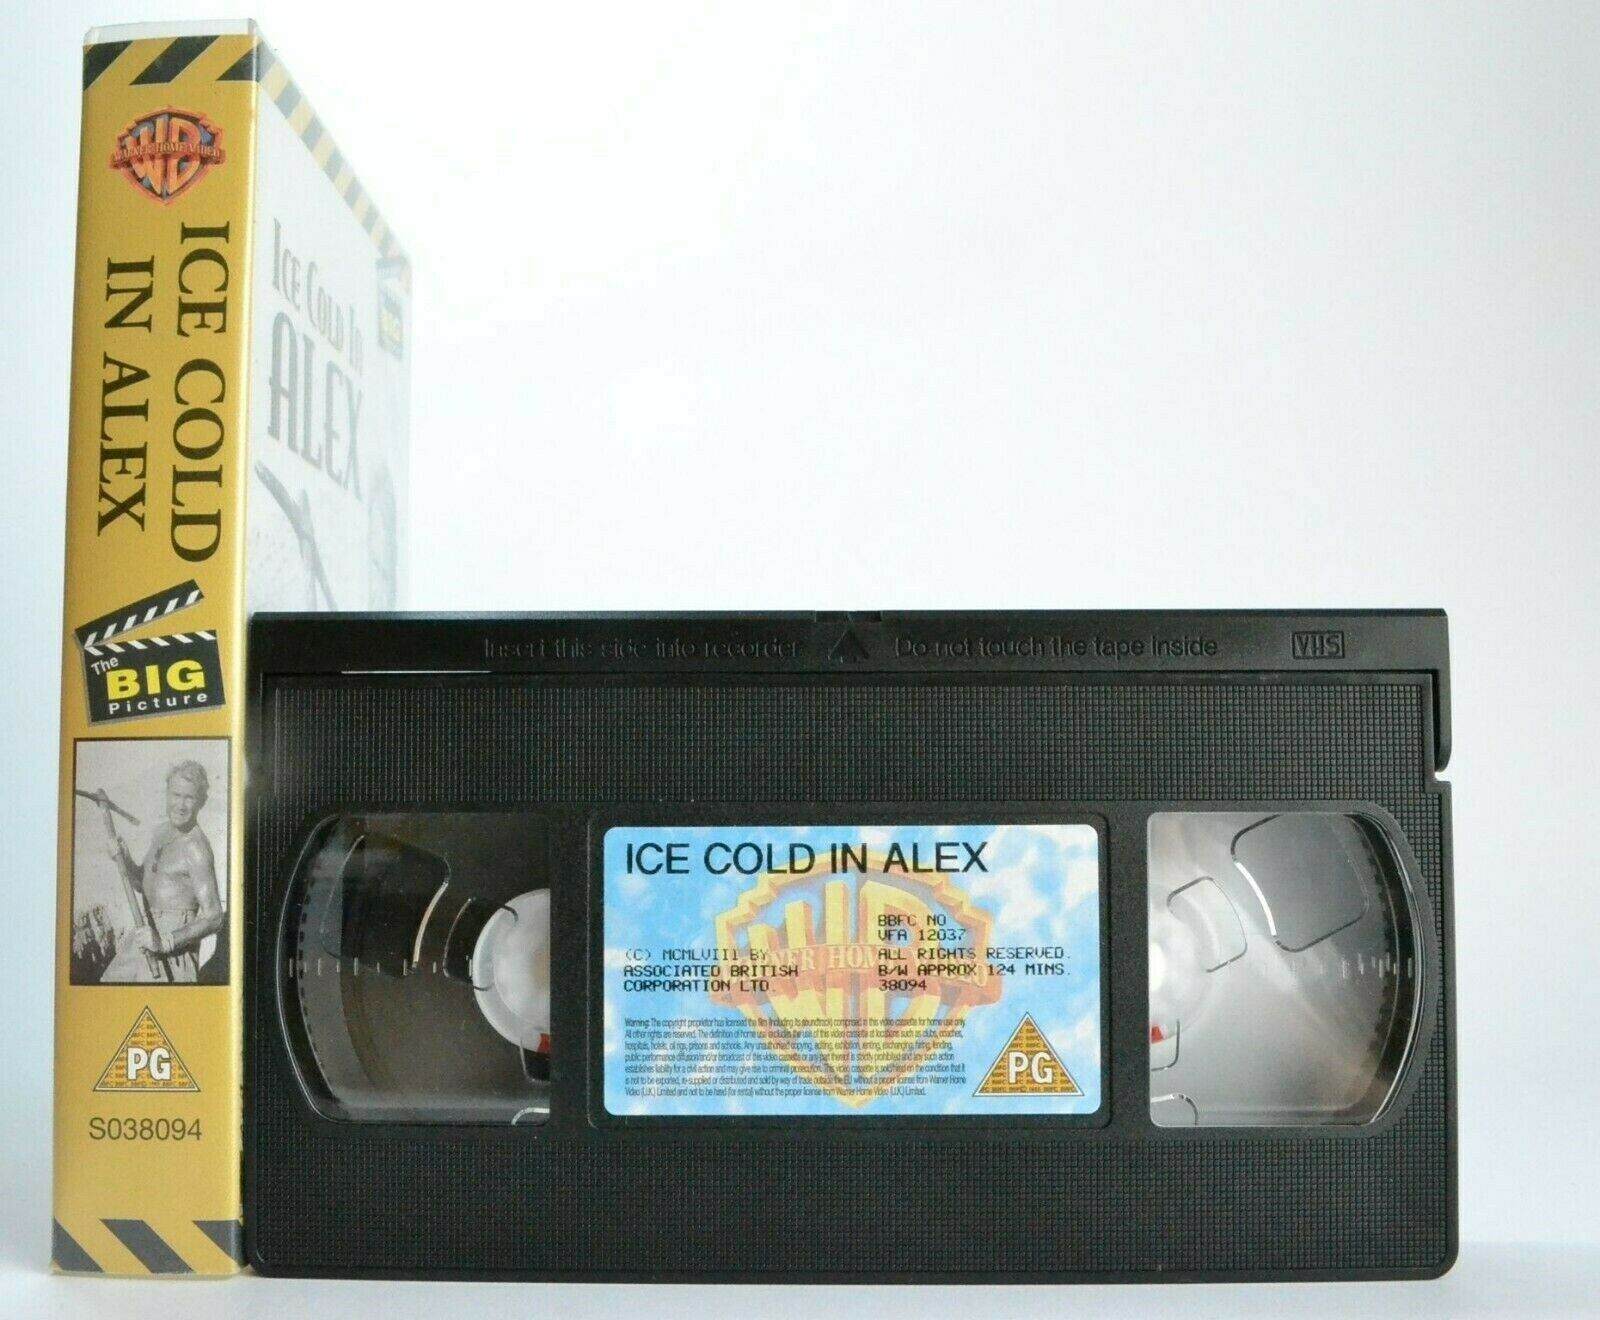 2000, Alex, Alexandria, British, Britney Spears, Cold, Drama, Ice, In, J. Lee Thompson, John, Lines, Mills, No, PAL, PG, Sylvia Syms, VHS, War